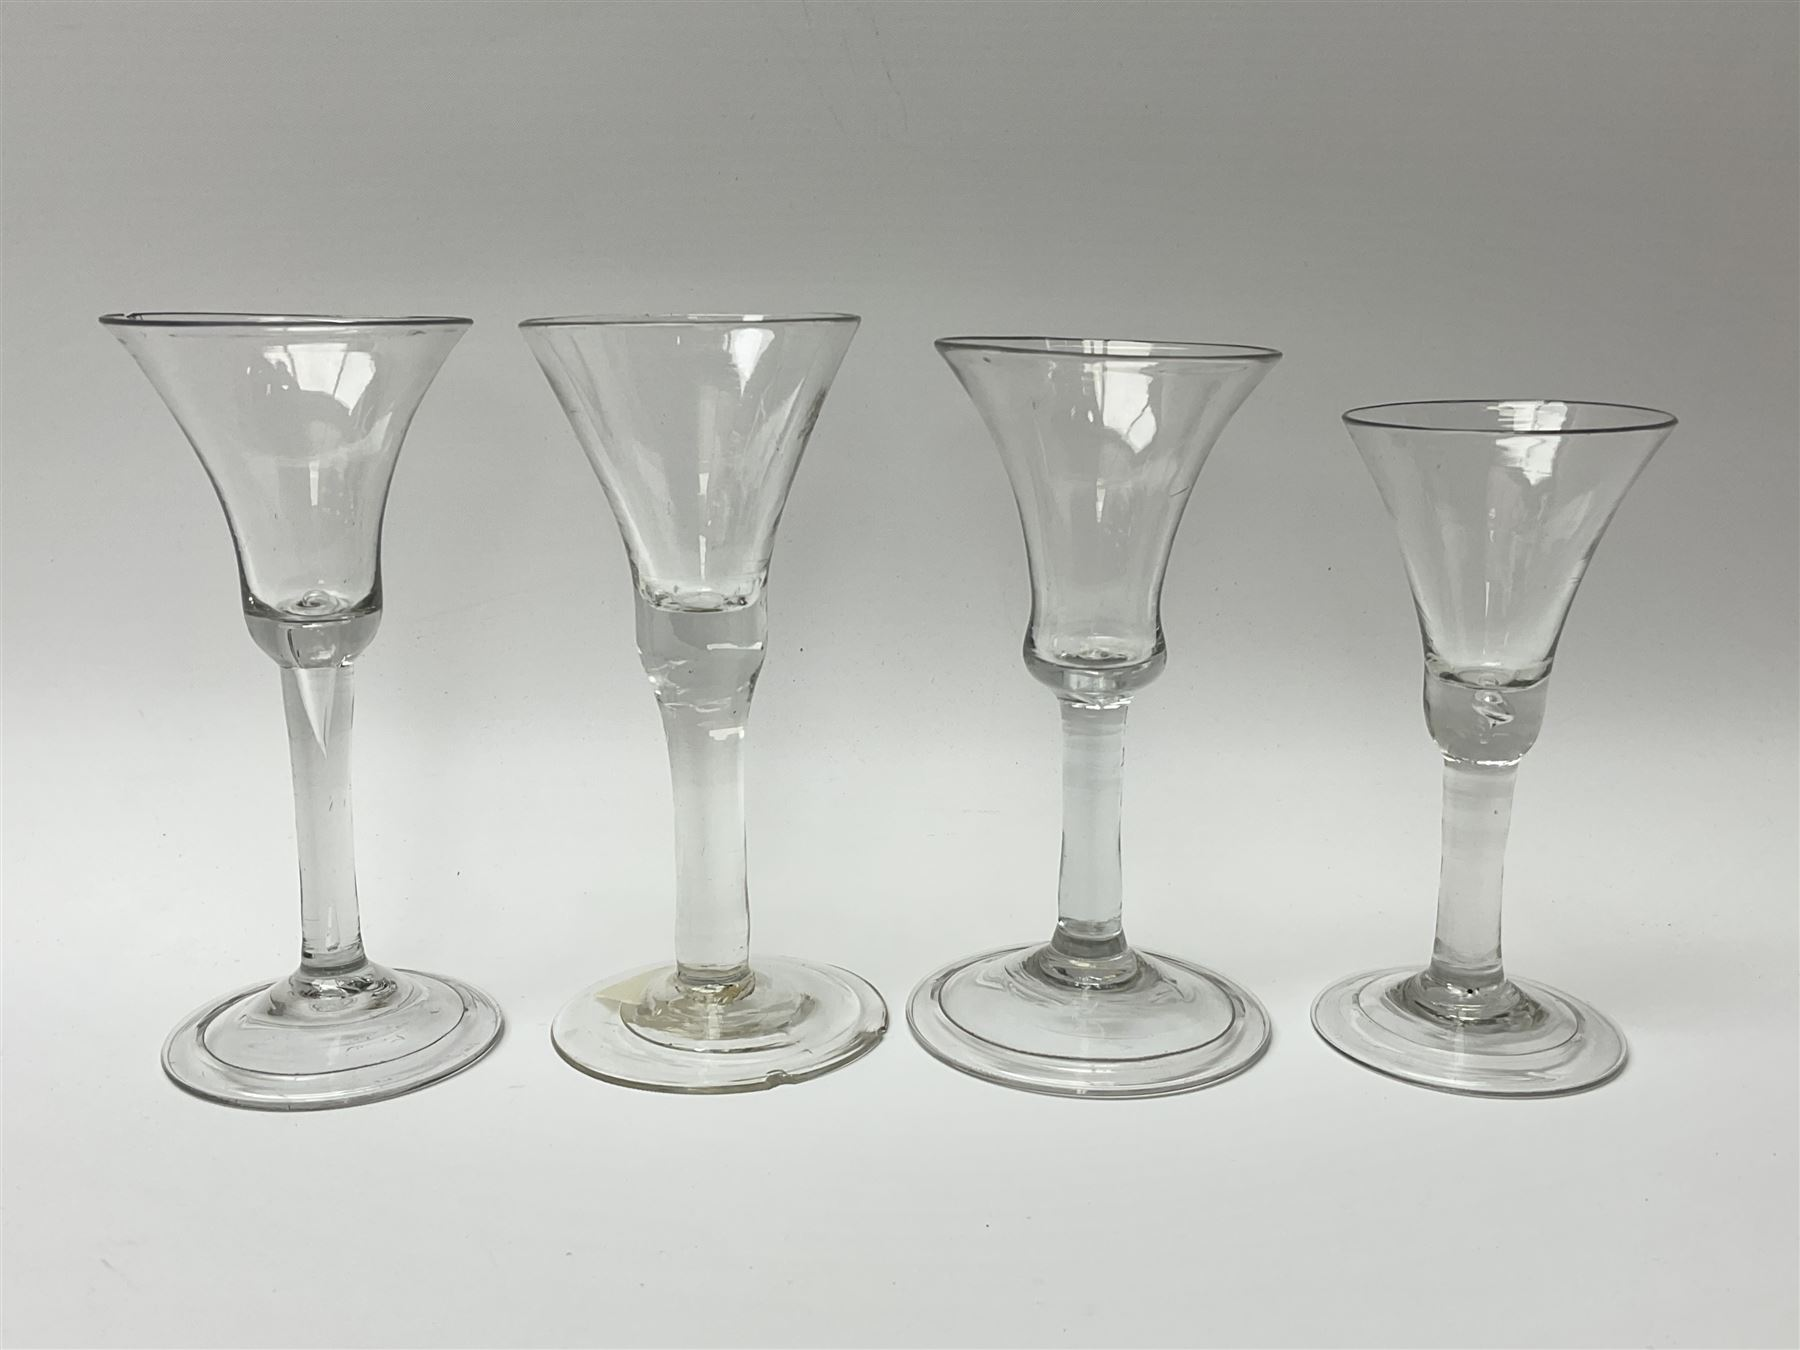 Four 18th century drinking glasses